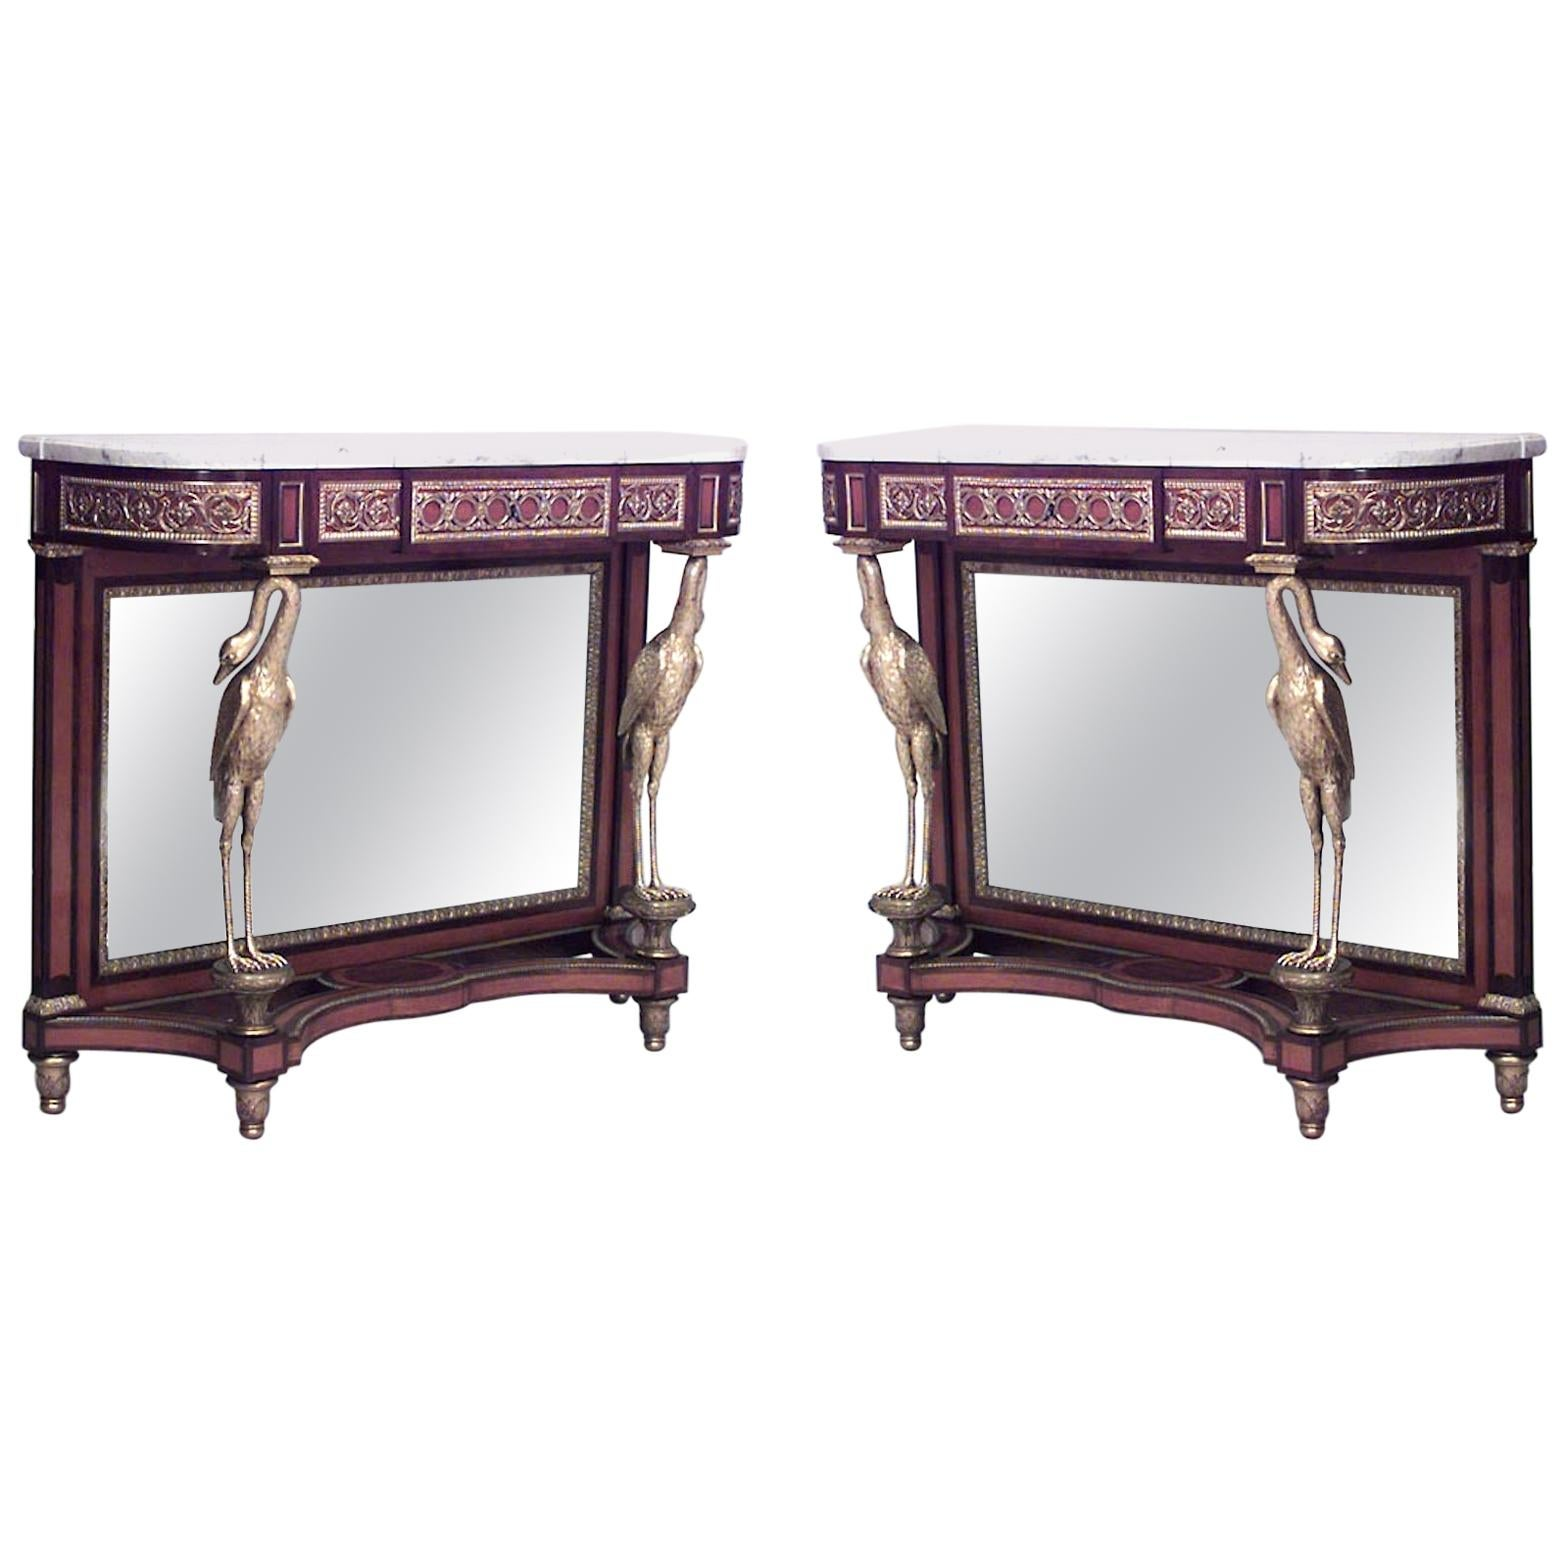 Pair Of French Louis XVI Style Console Tables U0027Saunieru0027